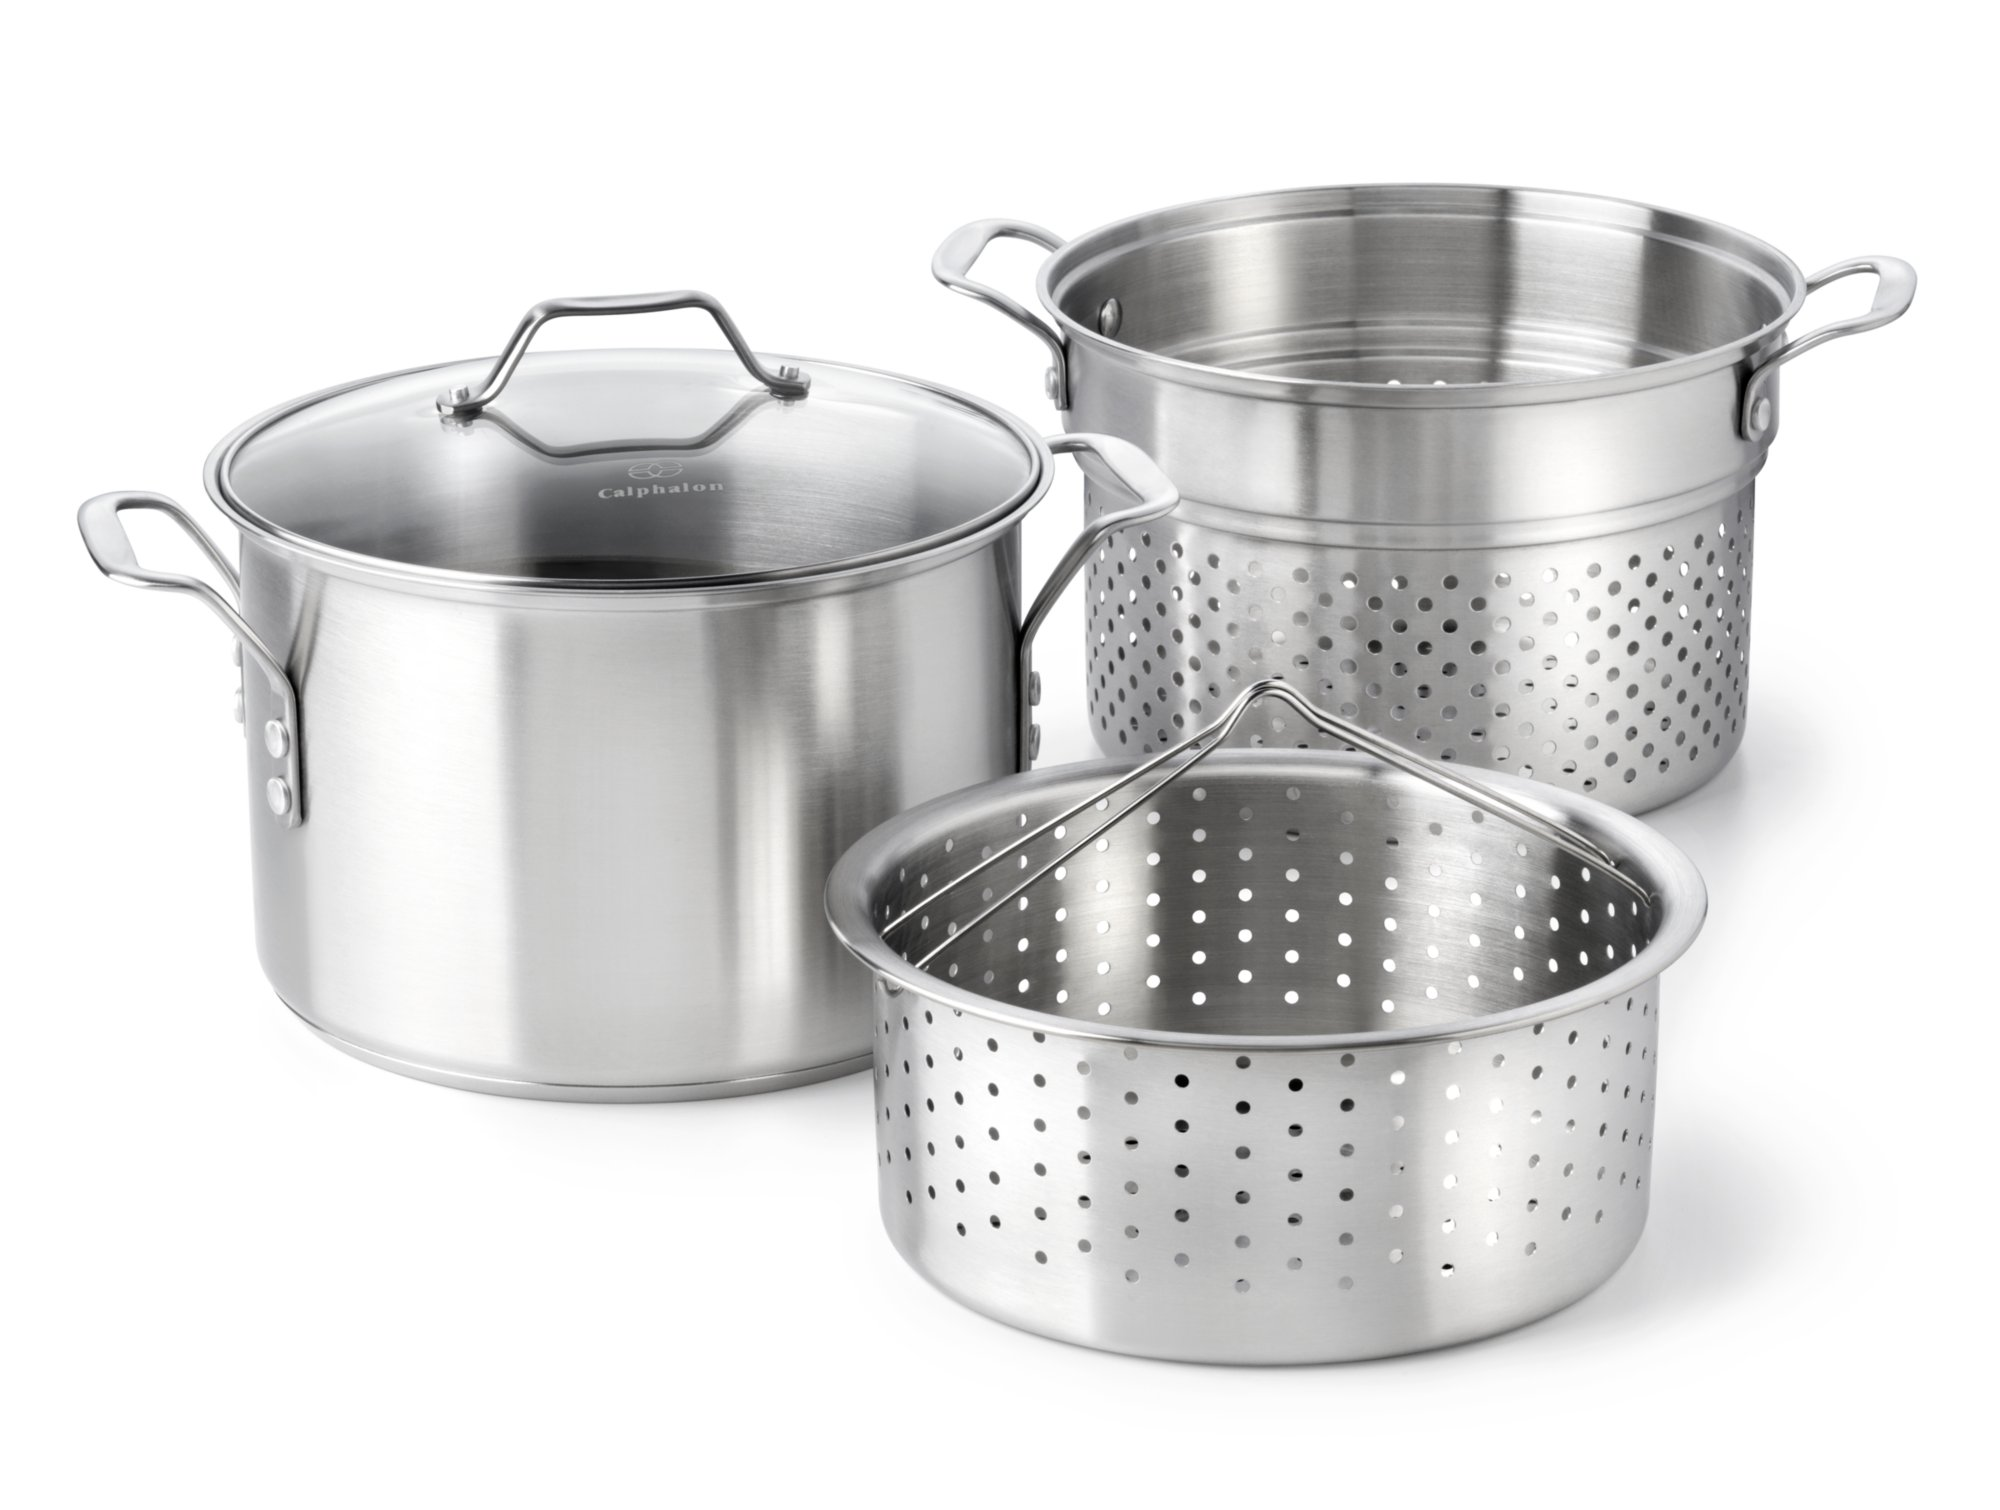 Calphalon Classic Stainless Steel 8-qt. Multi-Pot